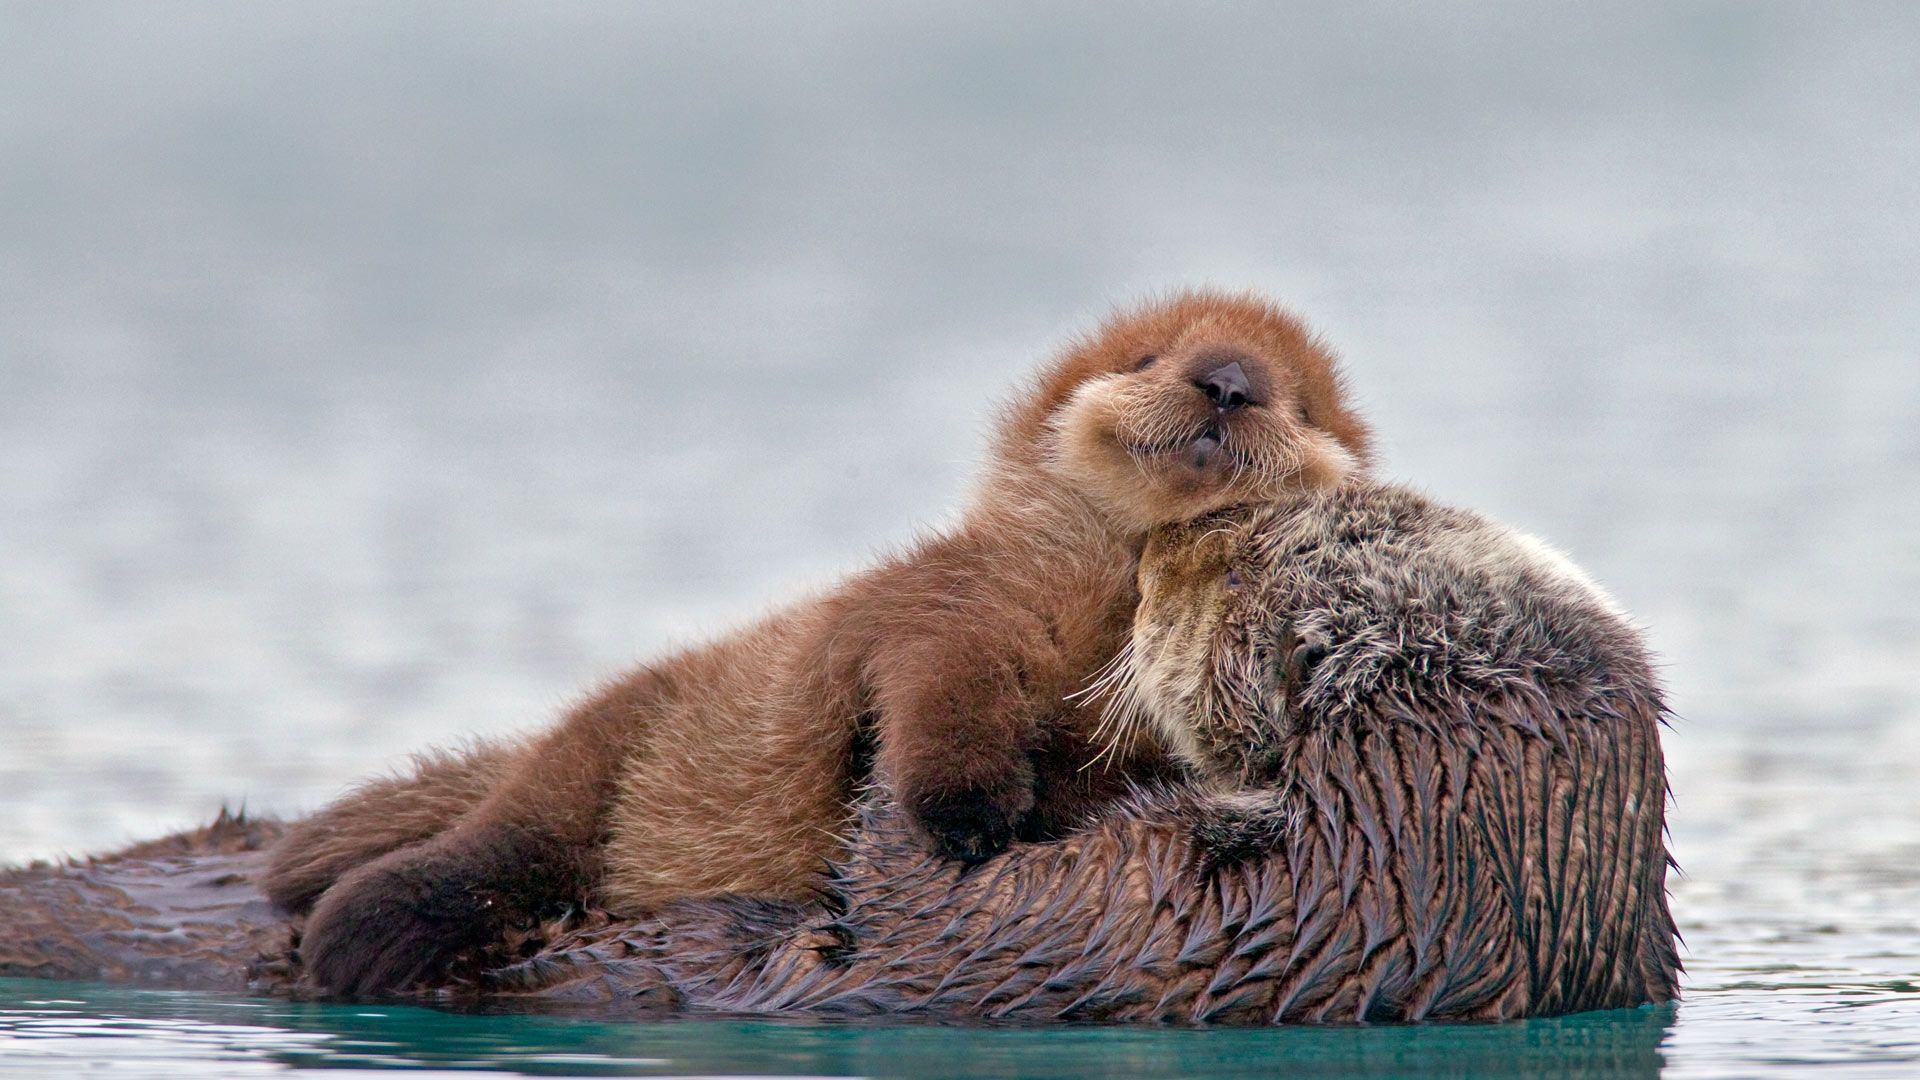 Pet Otter Australia Bing Image Archive Sea Otter With Pup Prince William Sound